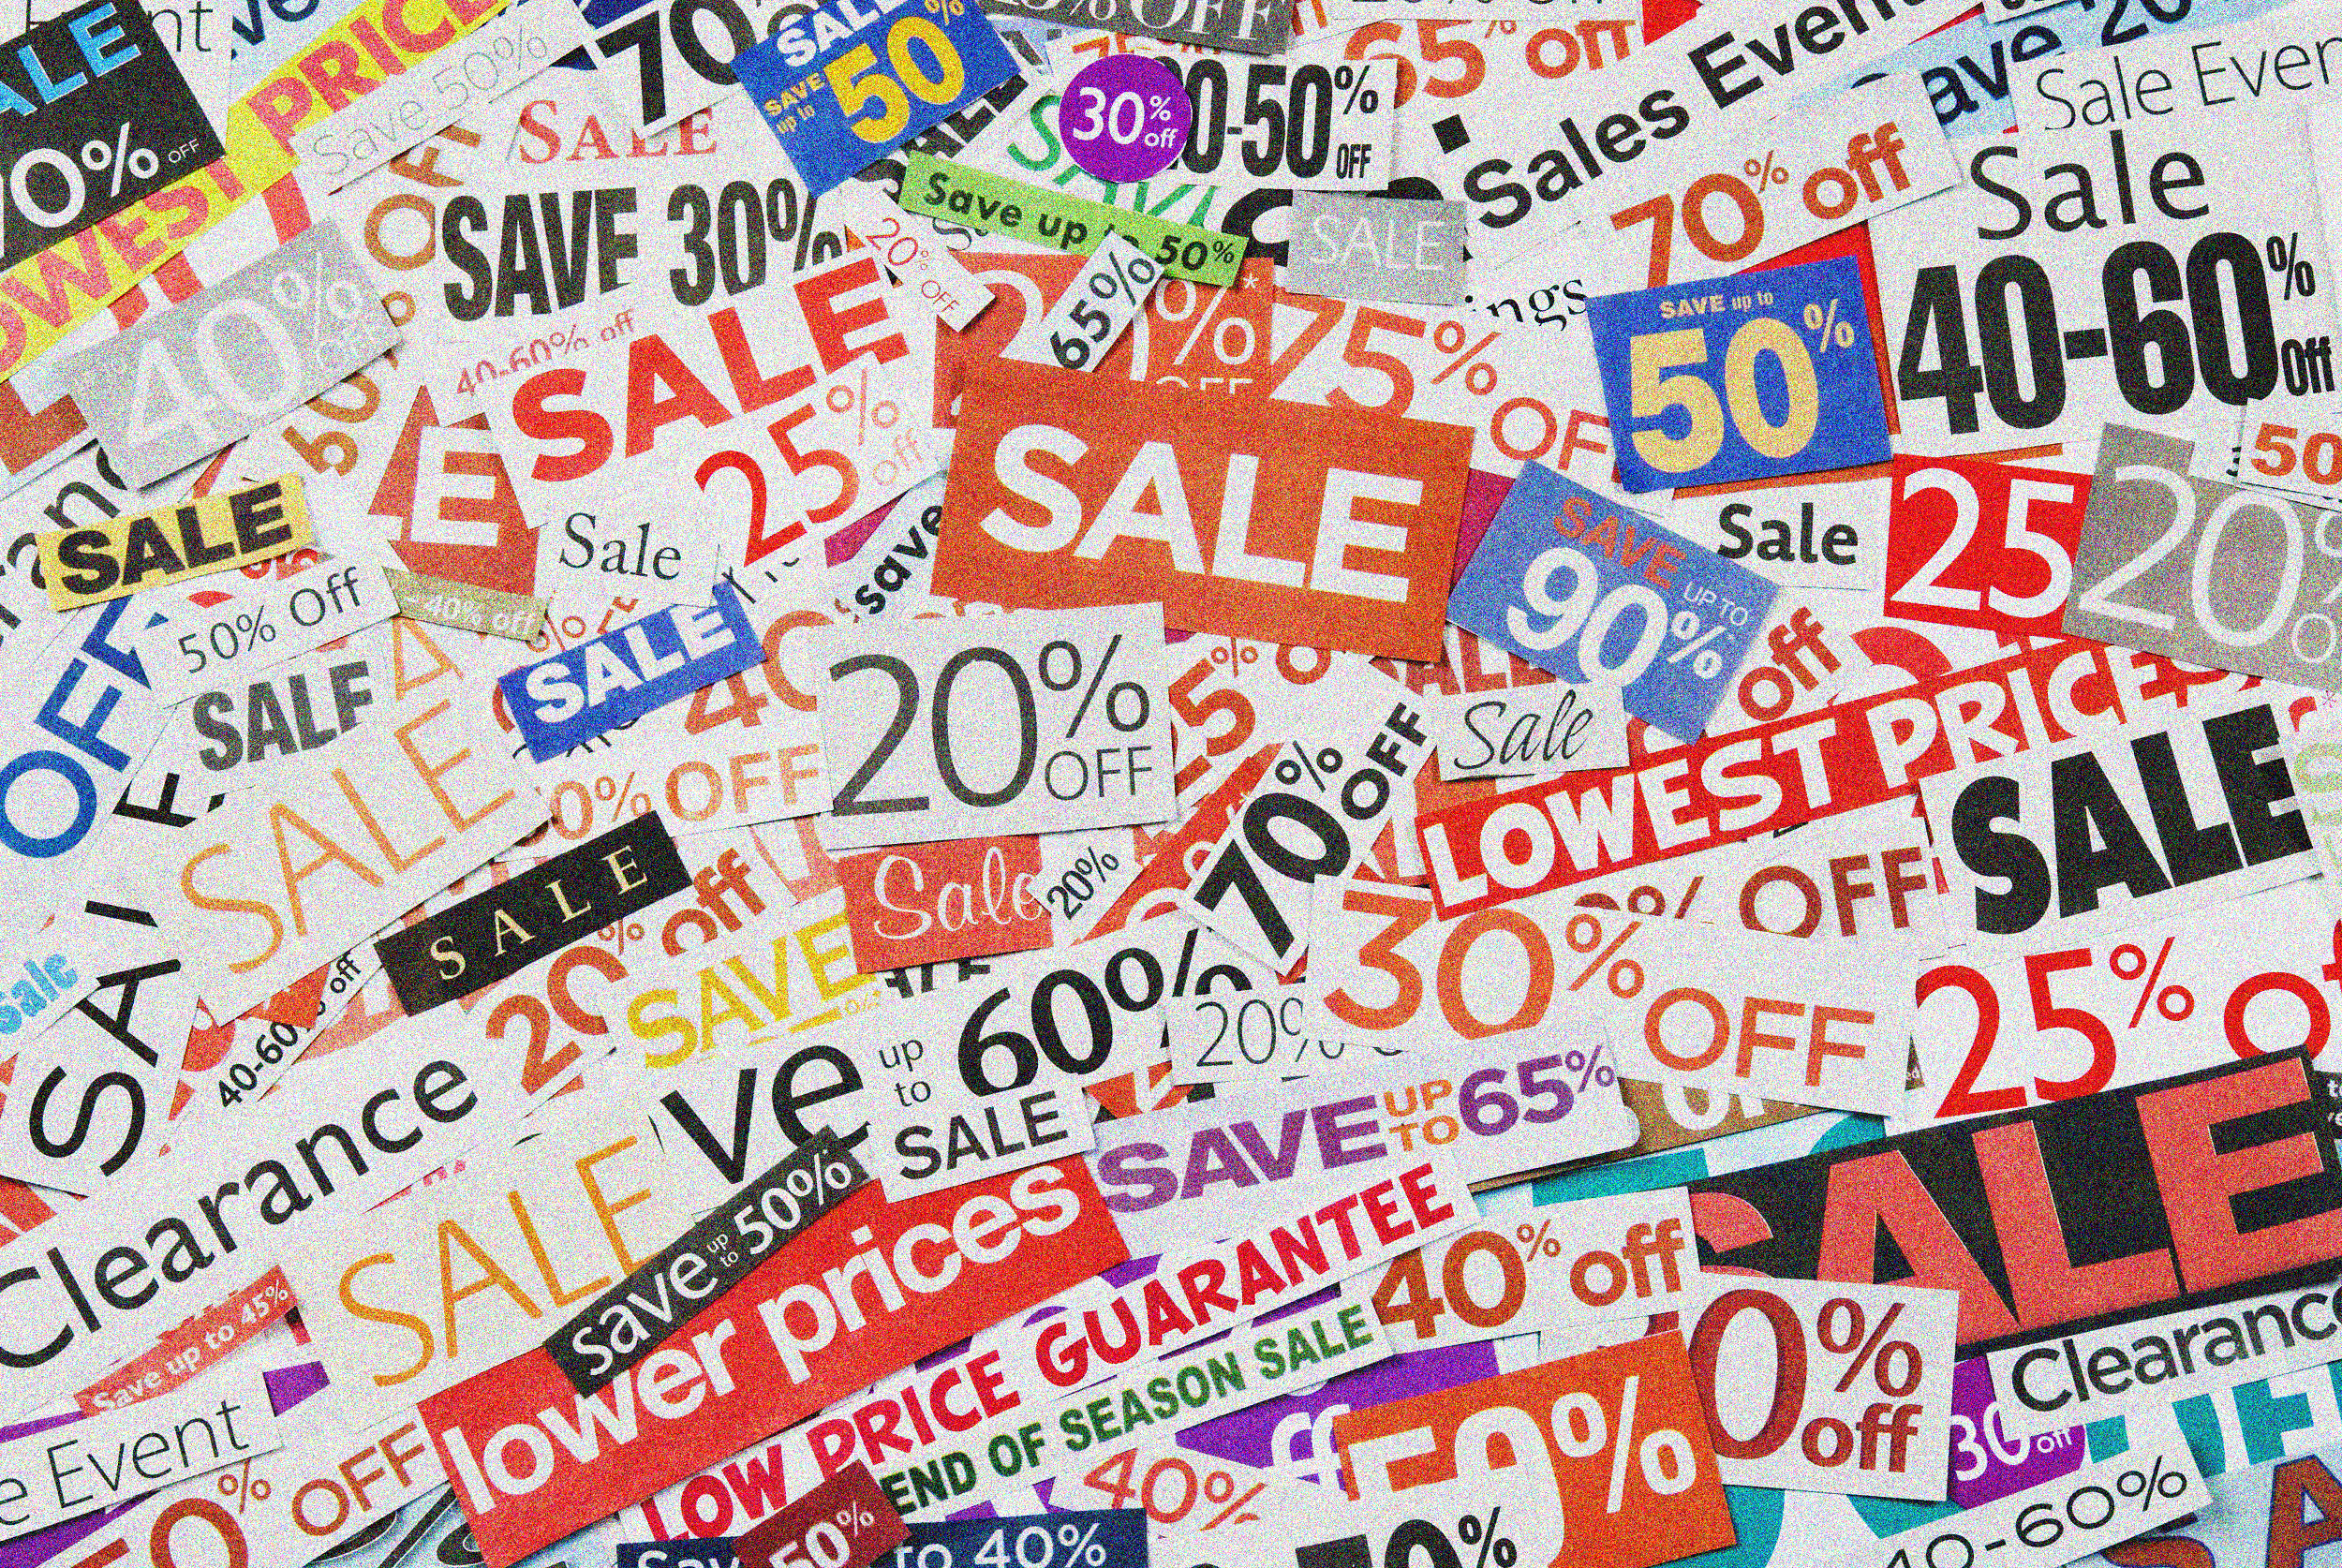 Virginia Beach woman gets 12 years in prison for massive coupon scam